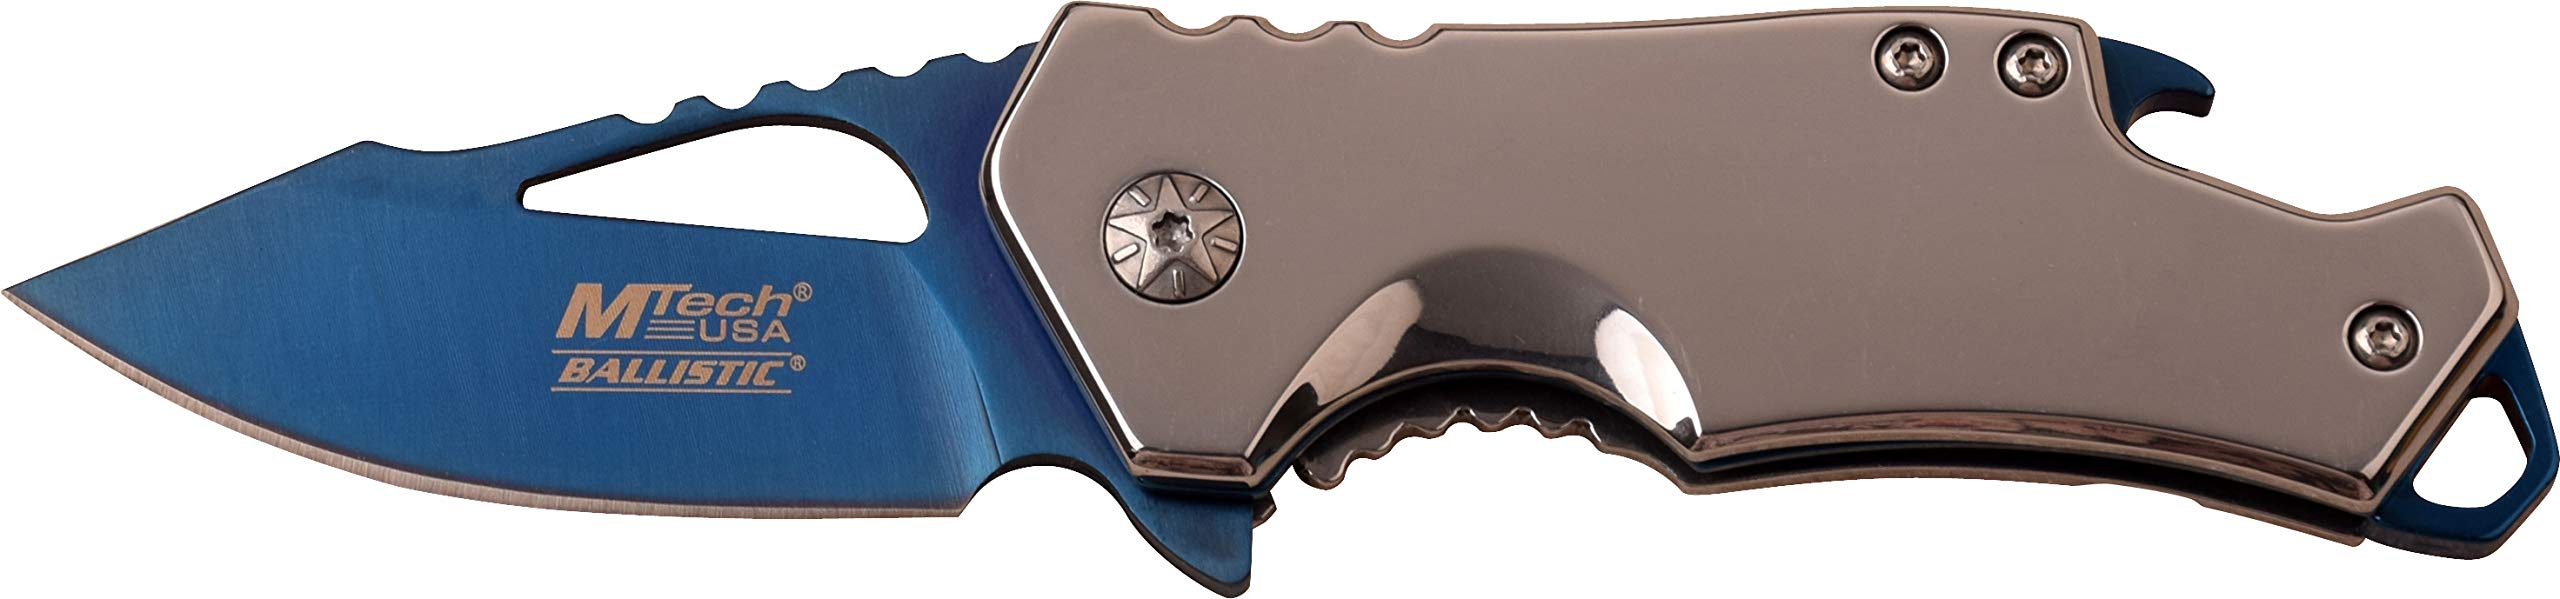 MTECH USA MT-A882SBL Spring Assist Folding Knife, Blue Straight Edge Blade, Silver Handle, 3-Inch Closed